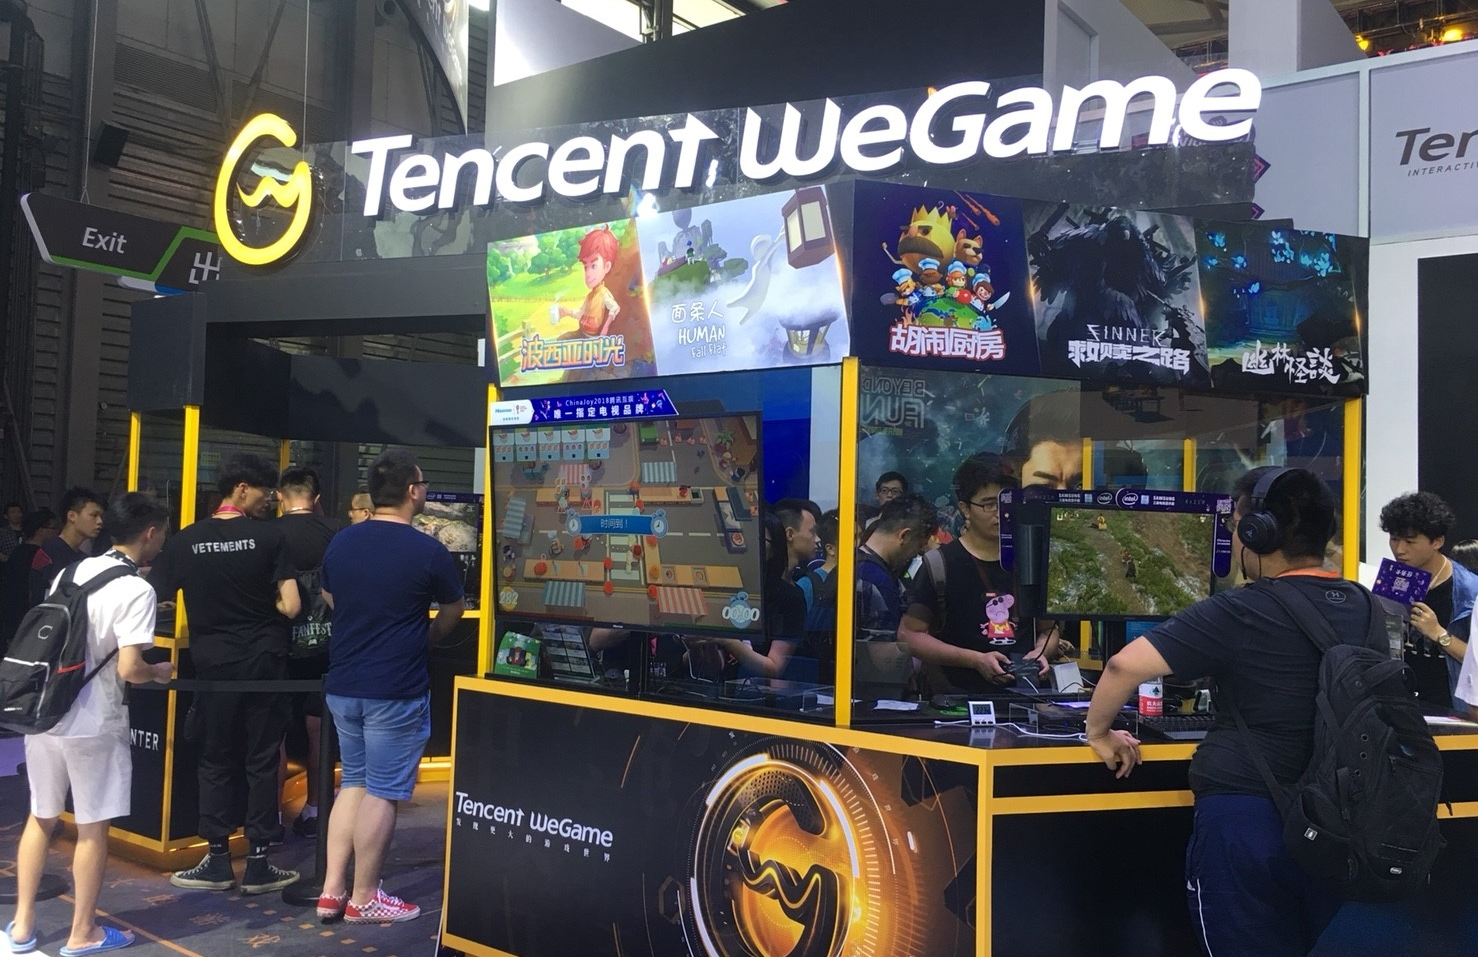 Tencent mobile game 180804 0004